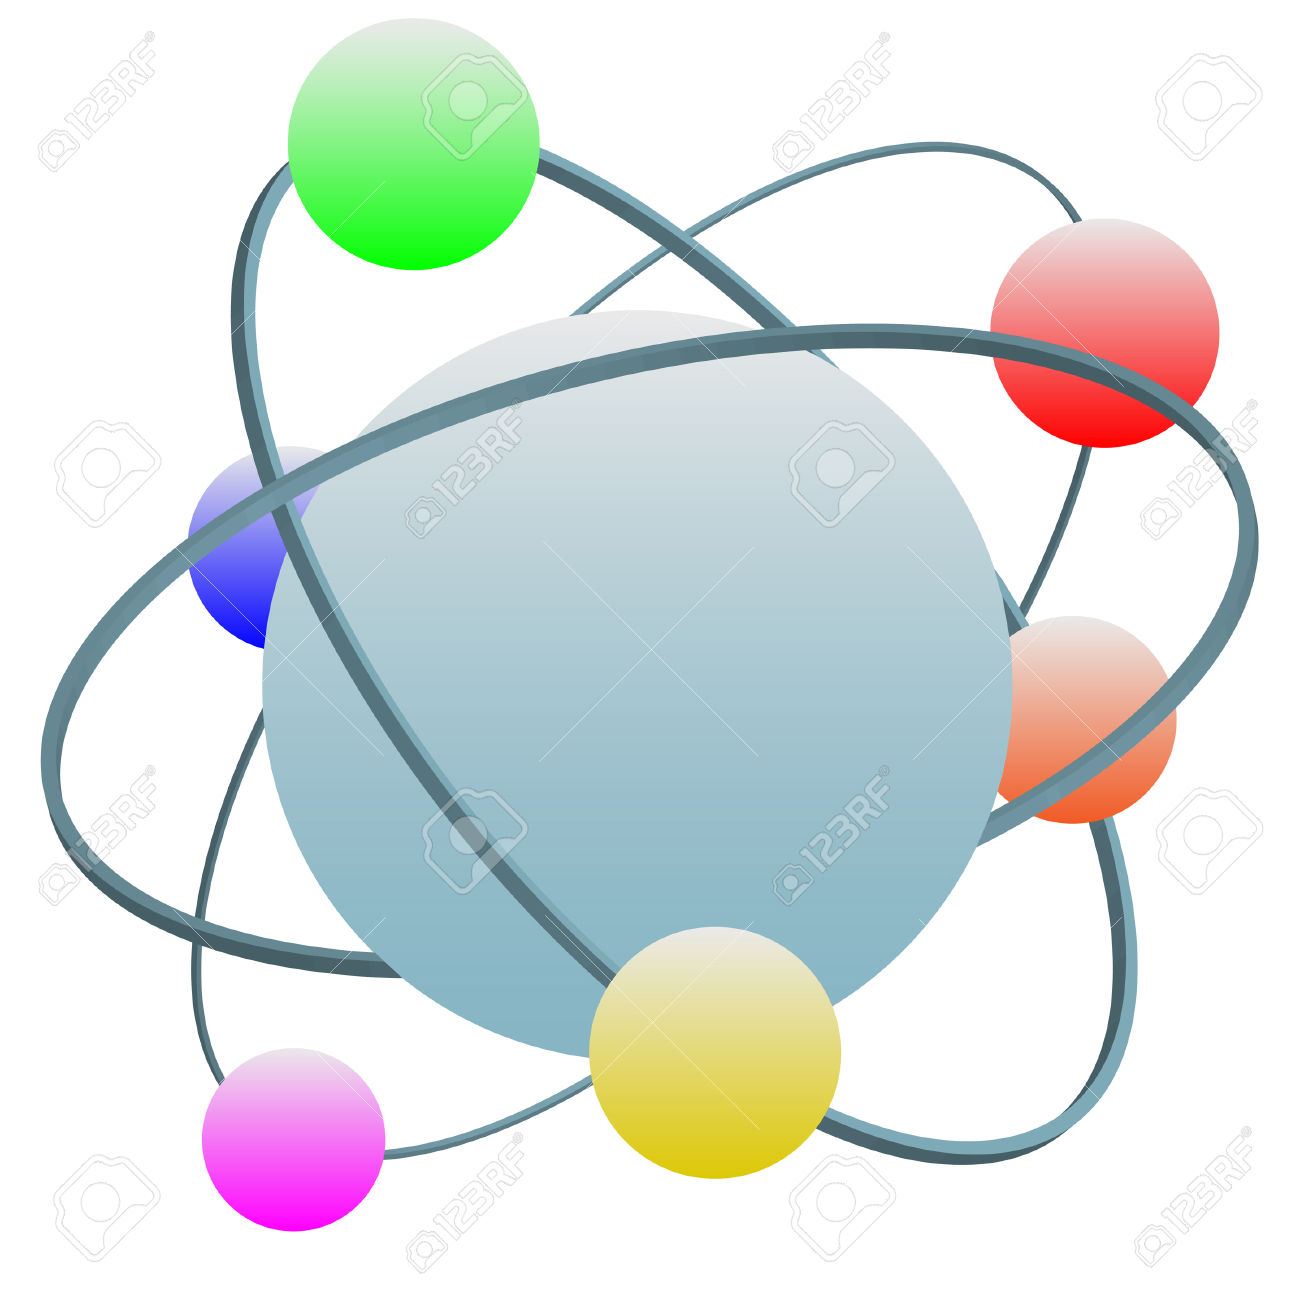 Idealized High Technology Atom Symbol With Colorful Electrons.